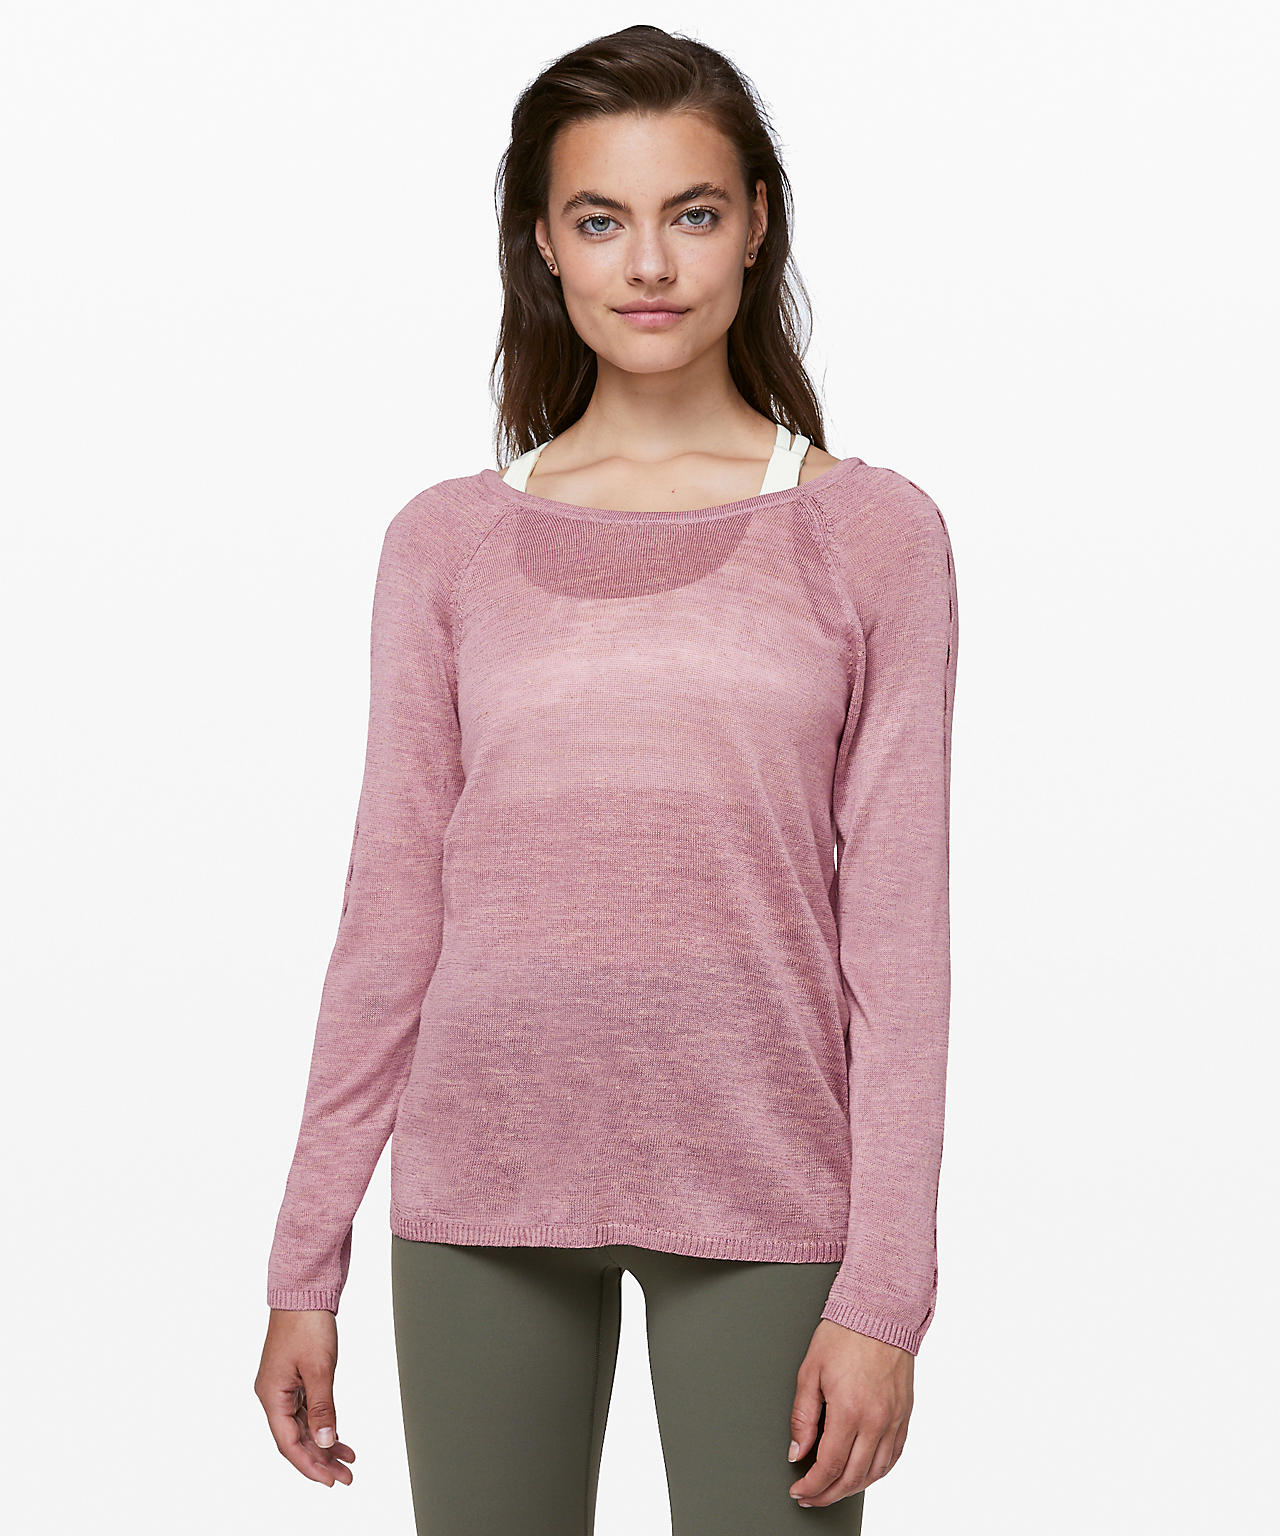 Mix and Mingle Pullover, Lululemon Upload